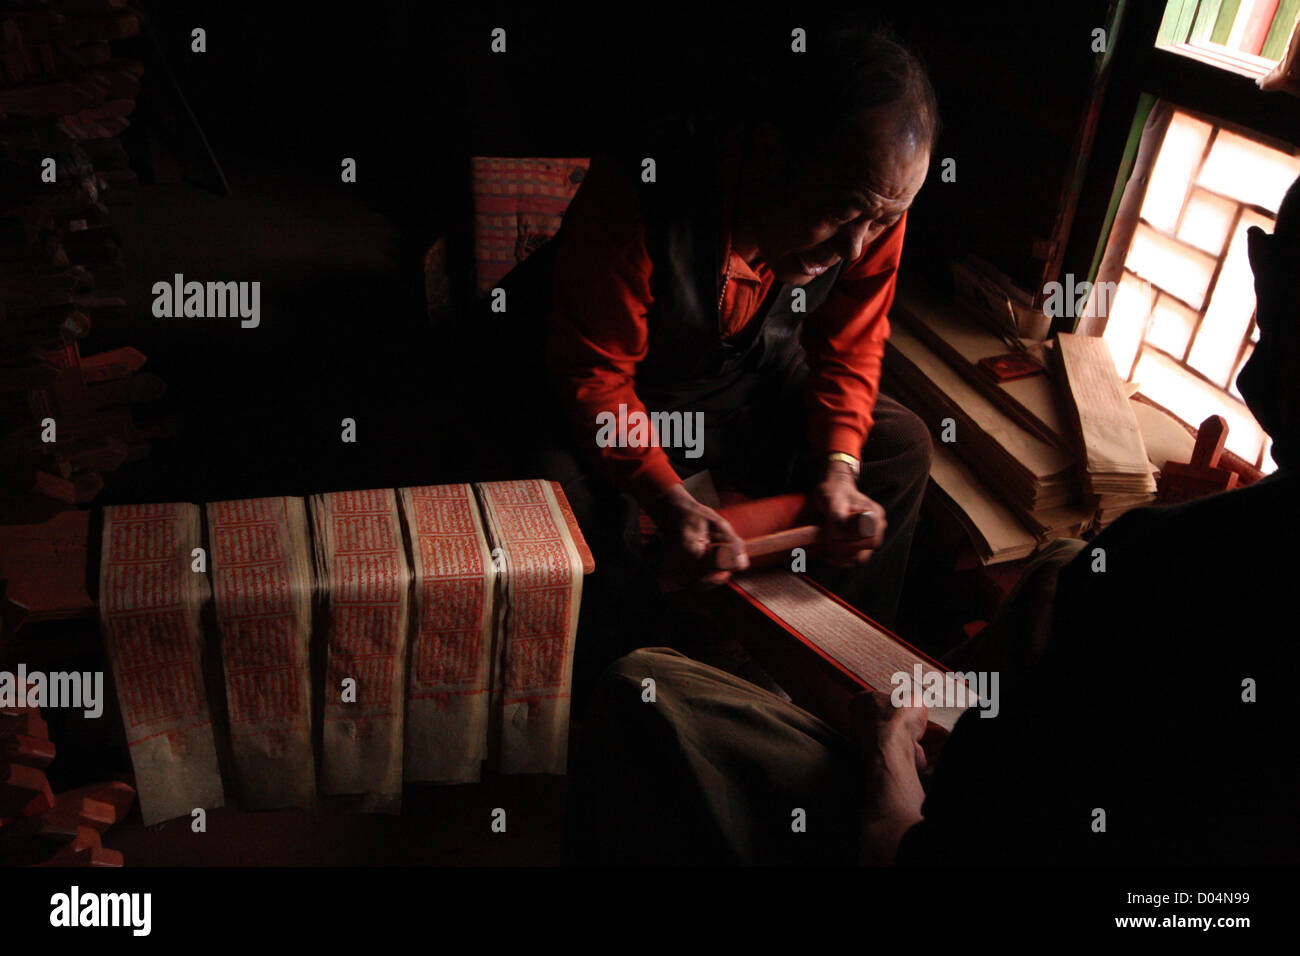 Buddhist monks, Bakong Scripture Printing Lamasery, Dege, NW Sichuan - Stock Image